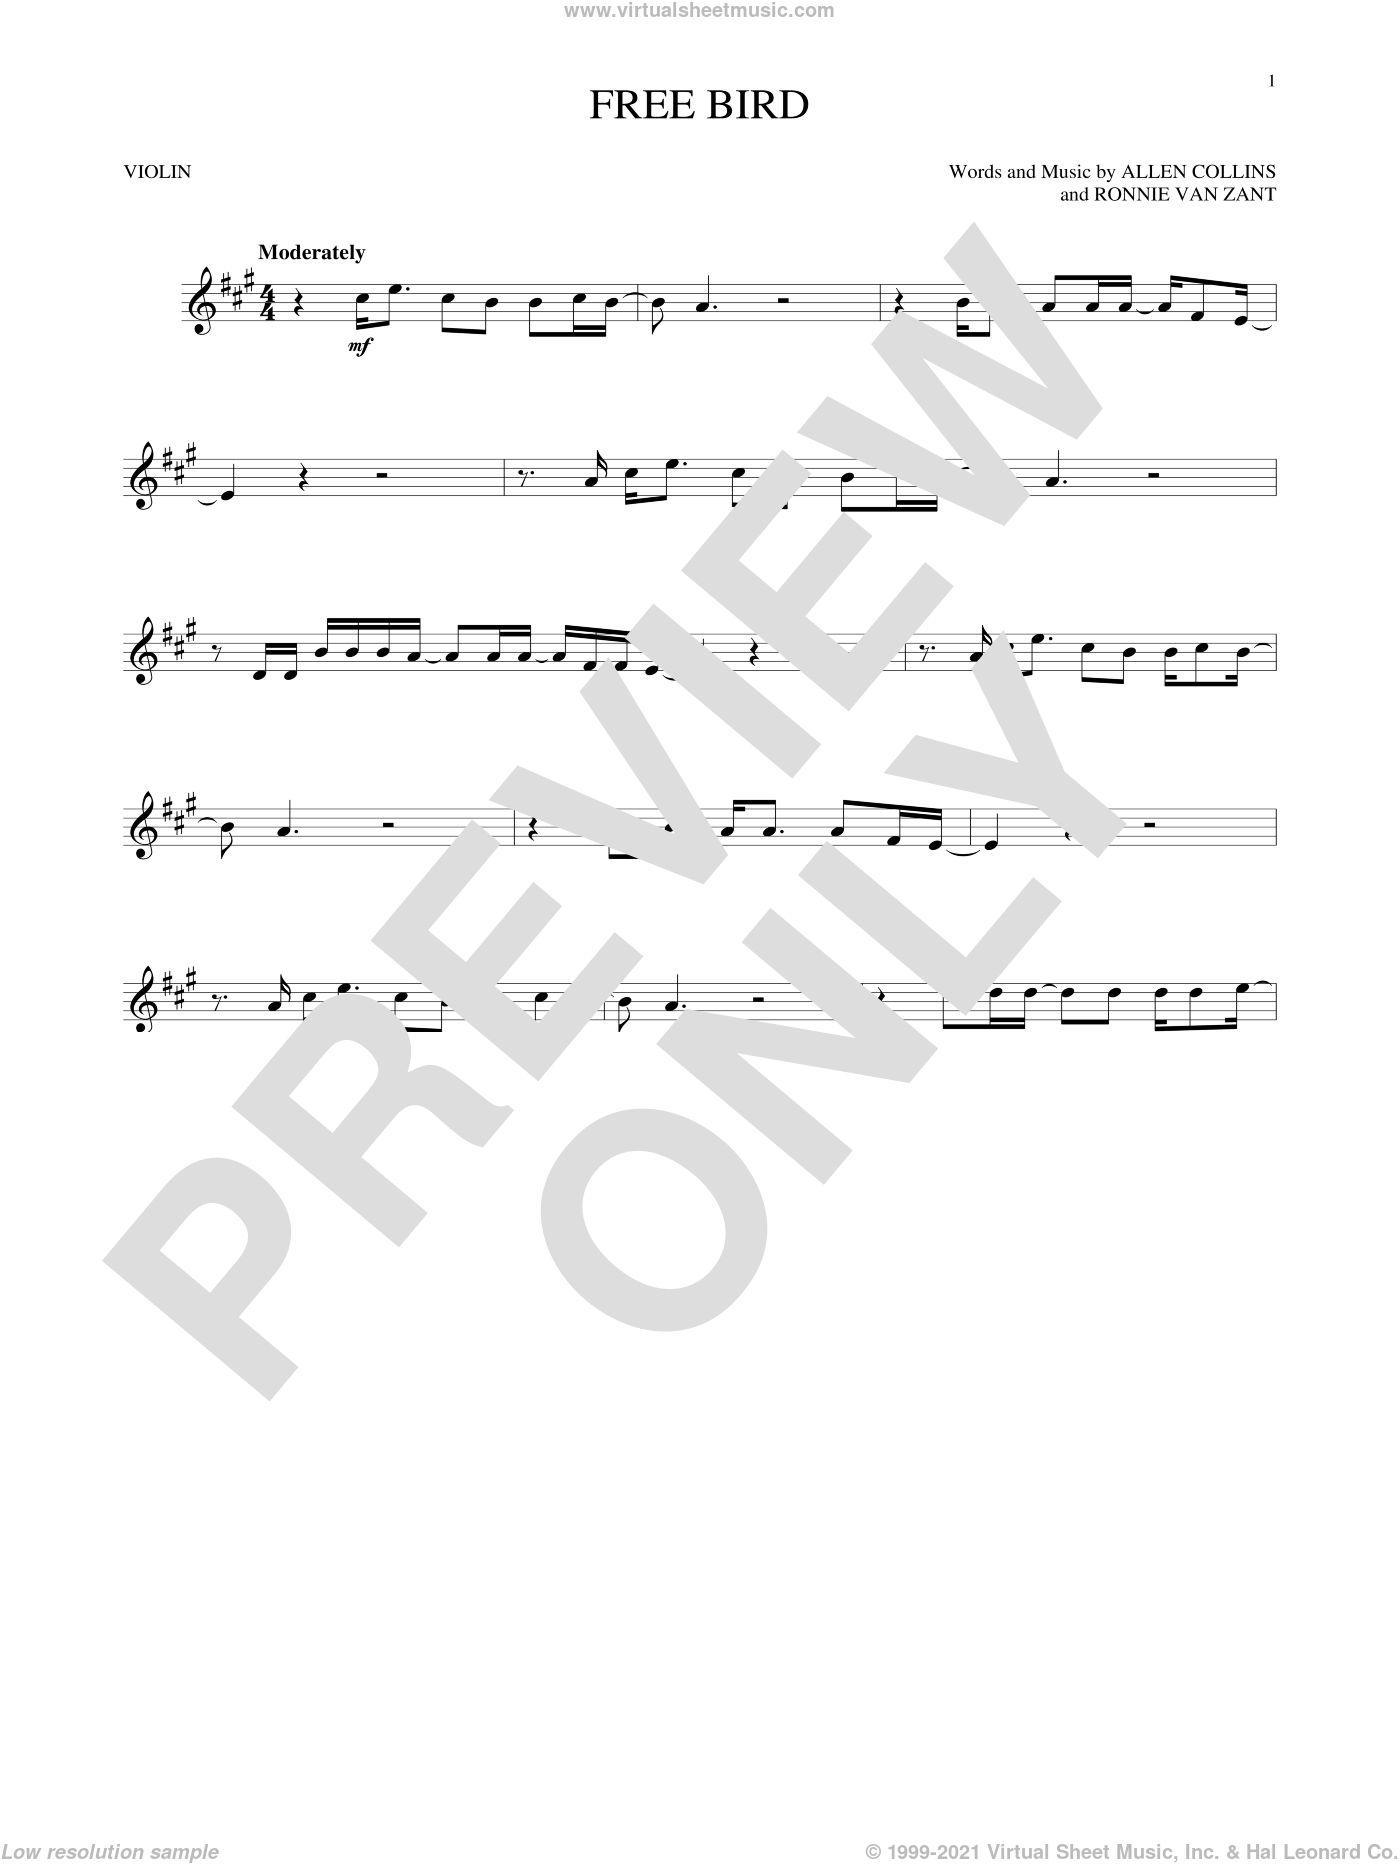 Free Bird sheet music for violin solo by Lynyrd Skynyrd, Allen Collins and Ronnie Van Zant, intermediate skill level